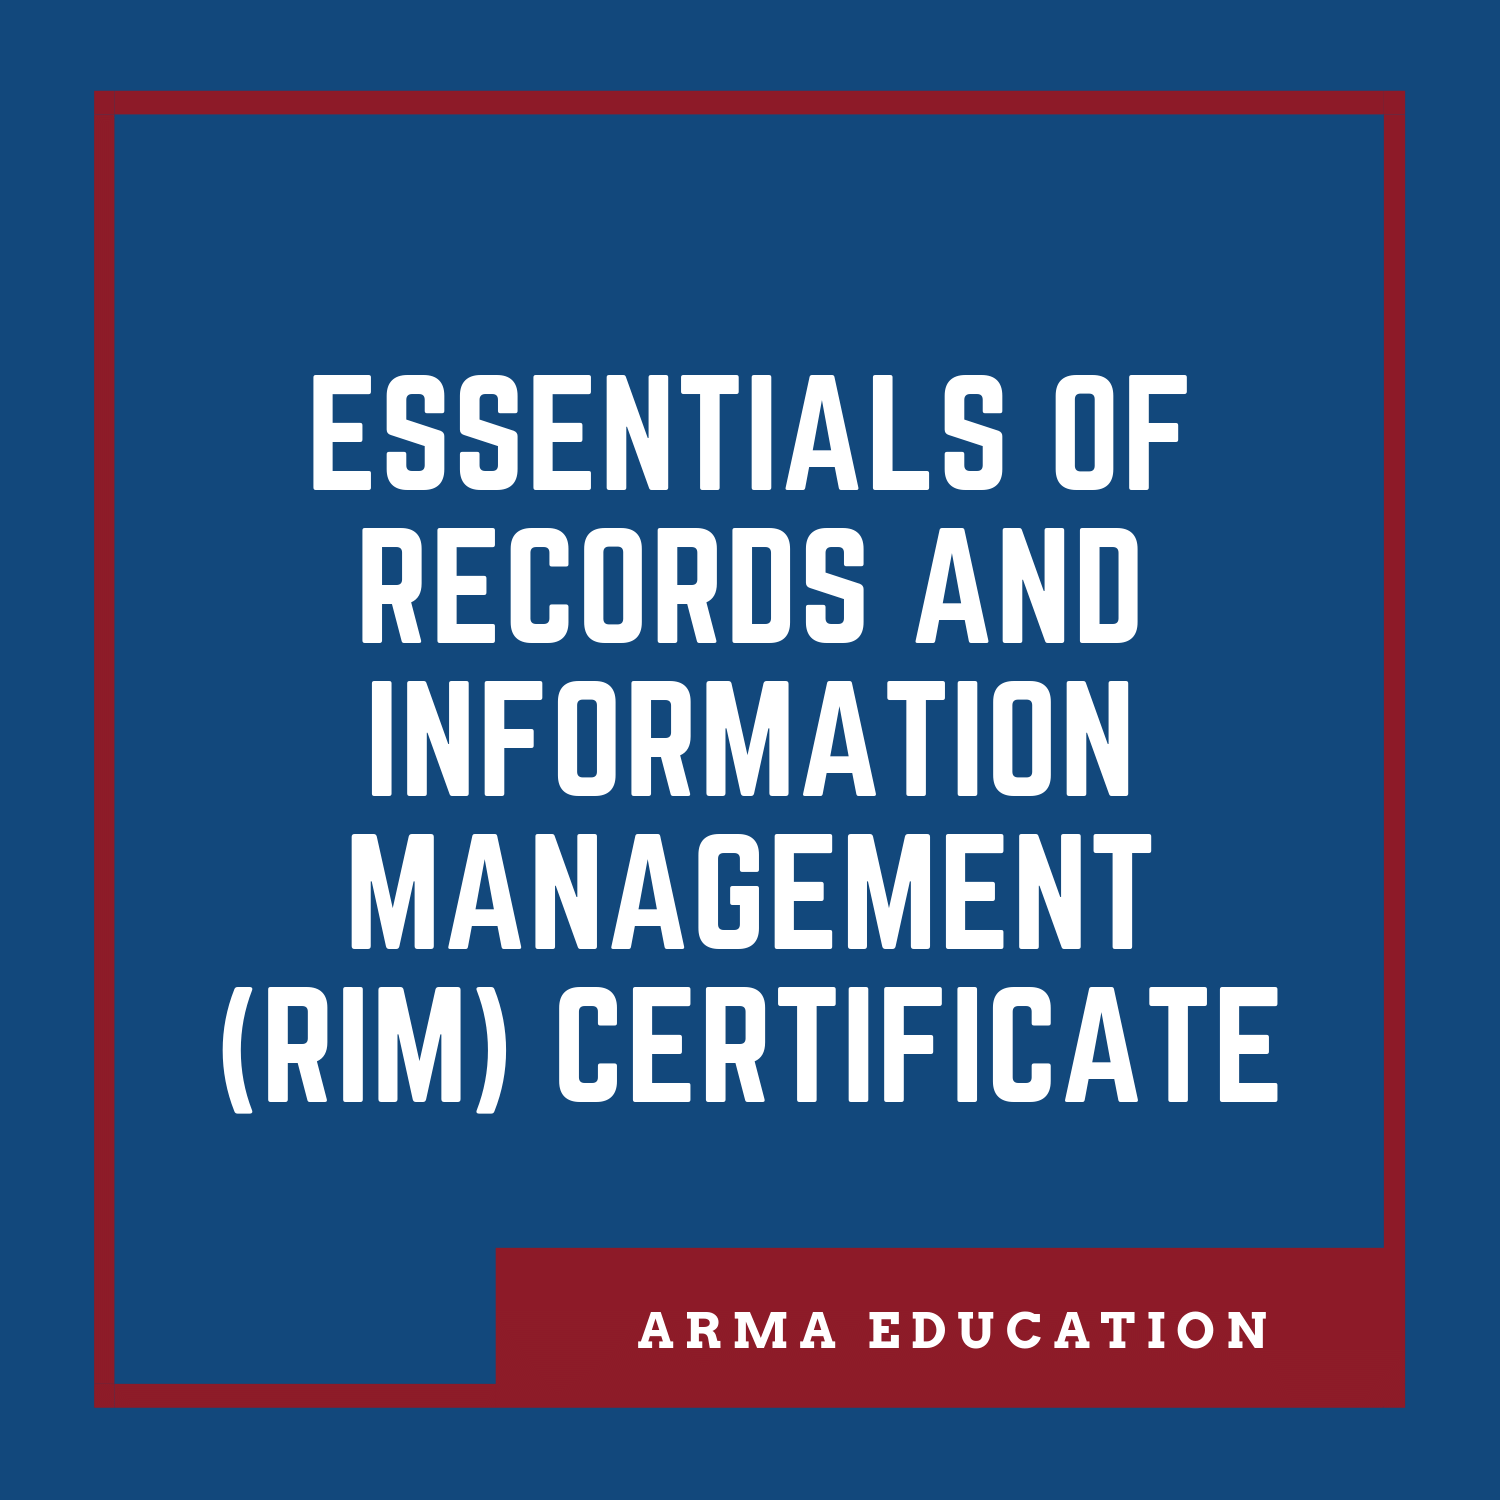 Essentials of Records and Information Management